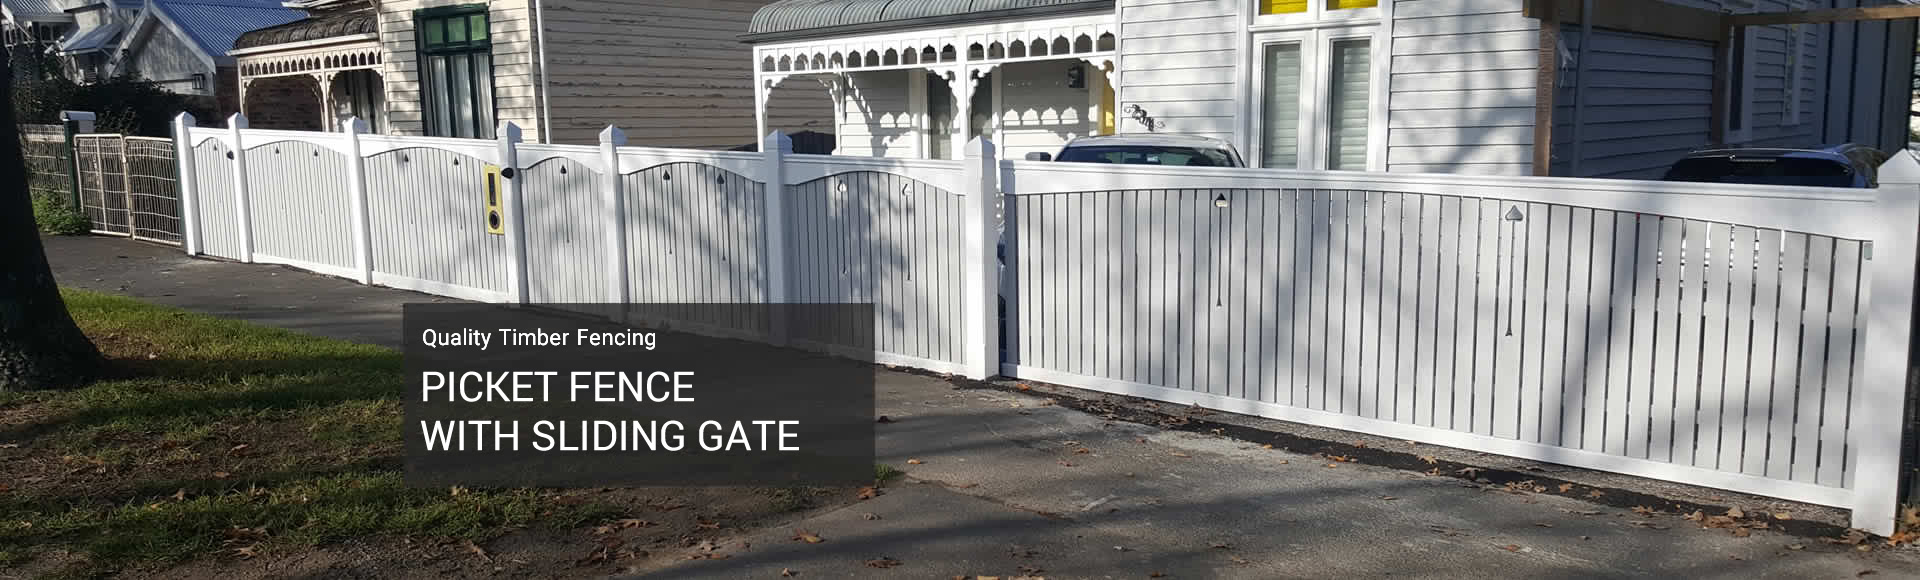 picket fence with sliding gate